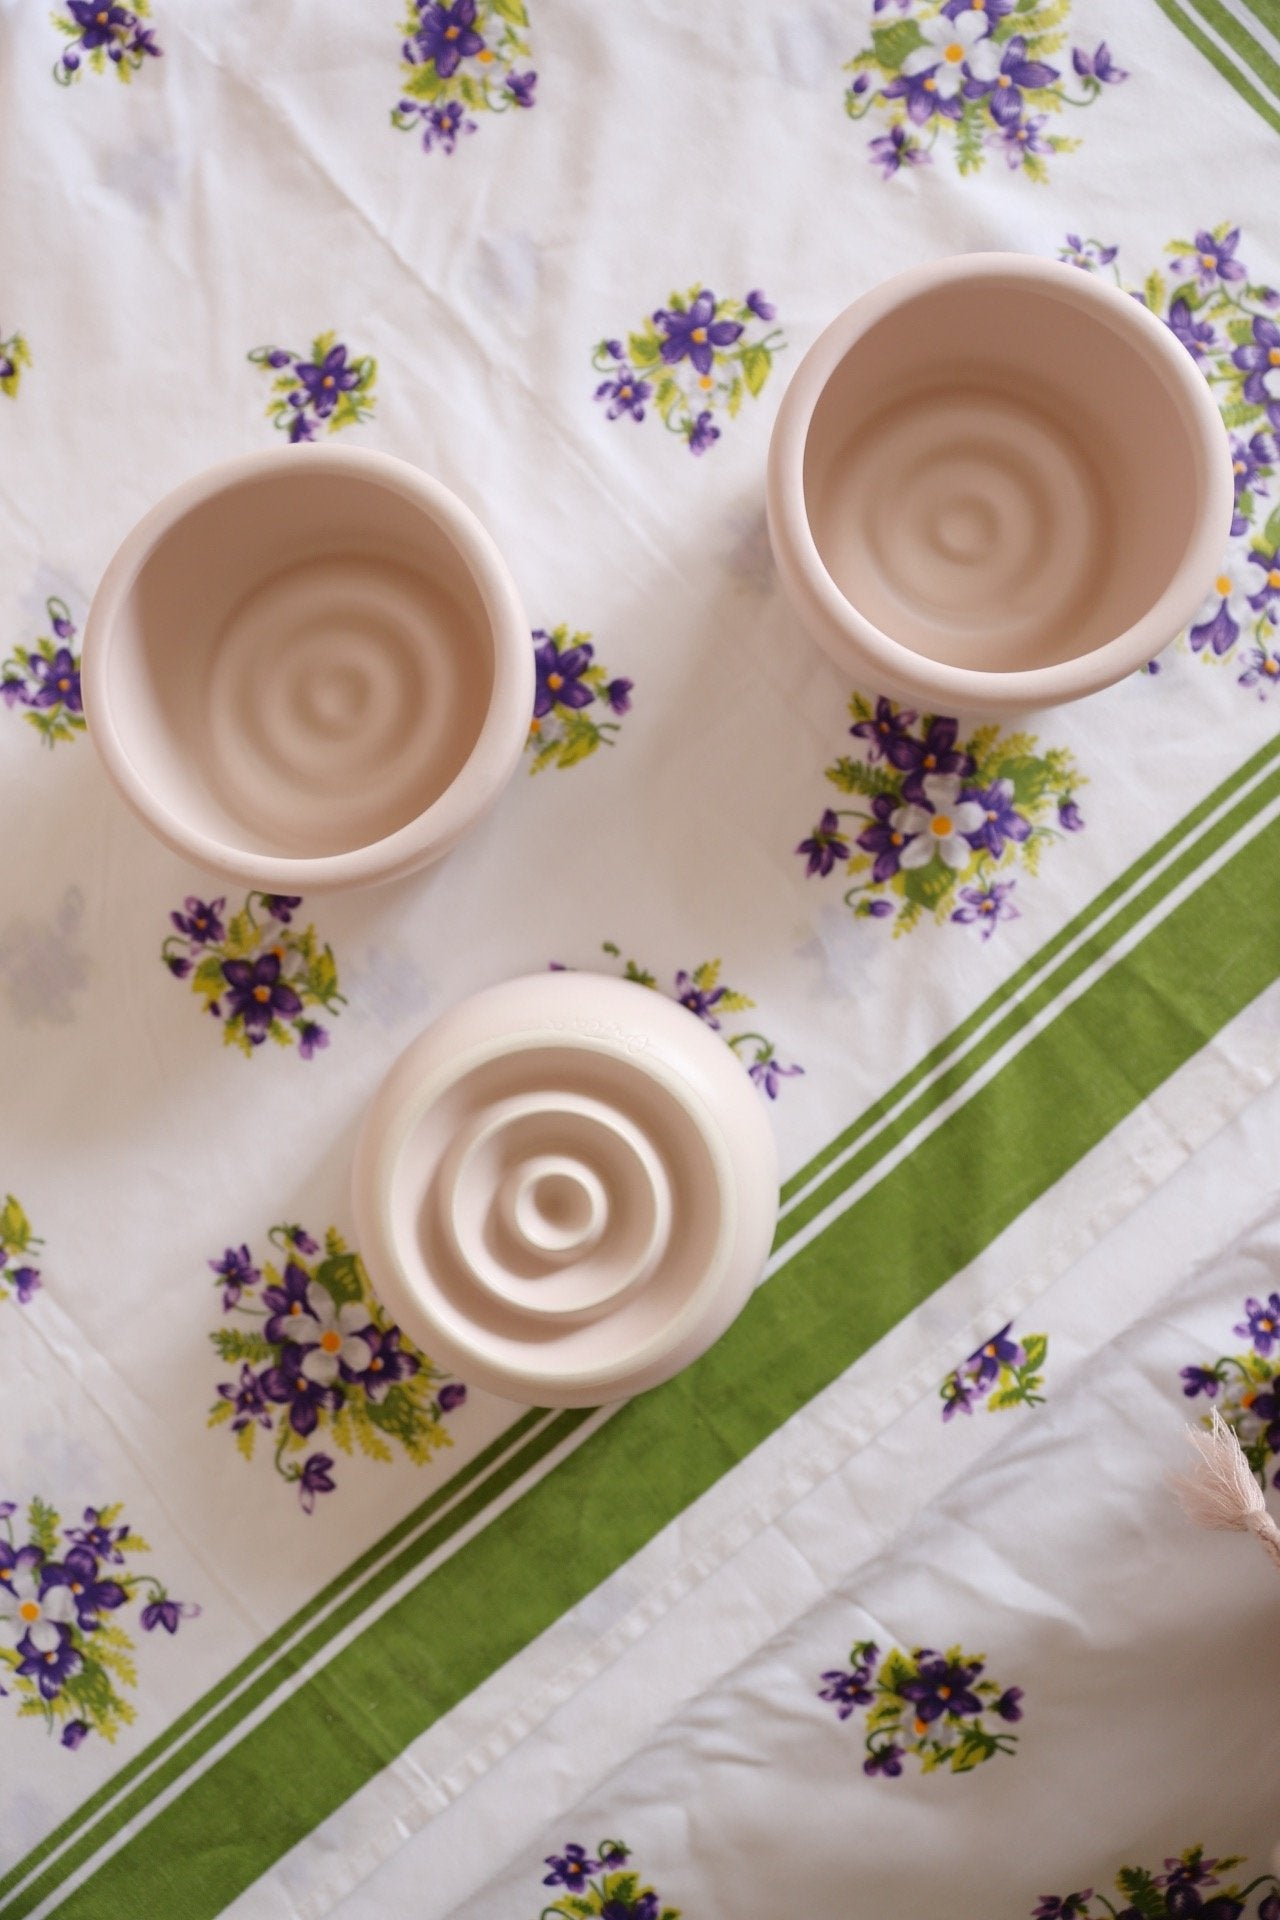 Oh Flora Store | blush round ceramic bowls with vintage table cloth